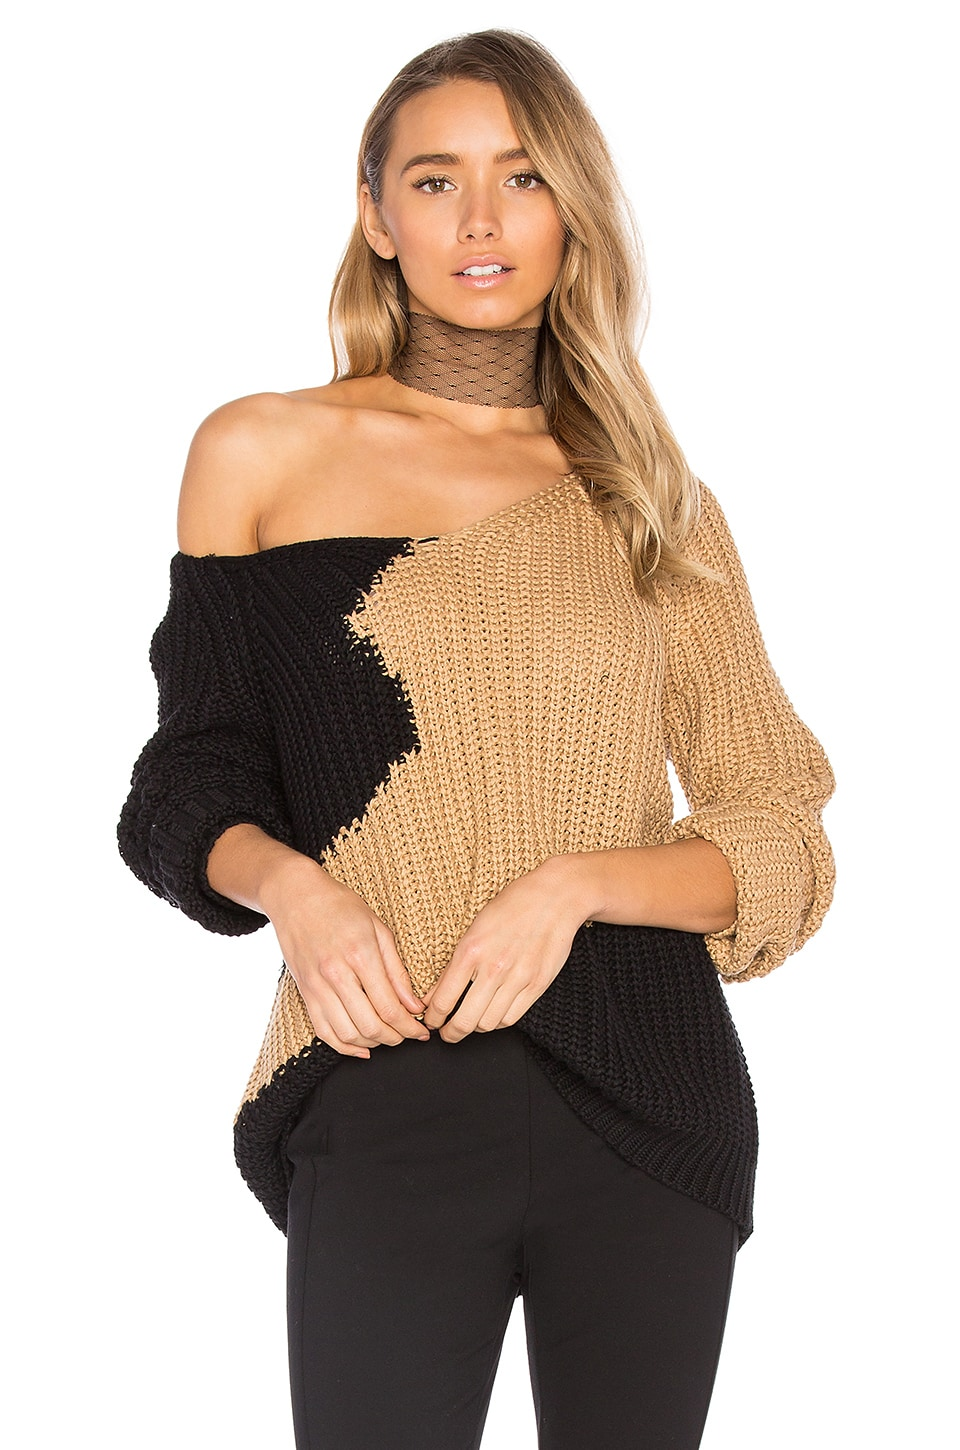 House of Harlow 1960 x REVOLVE Adrienne Pullover in Black & Camel